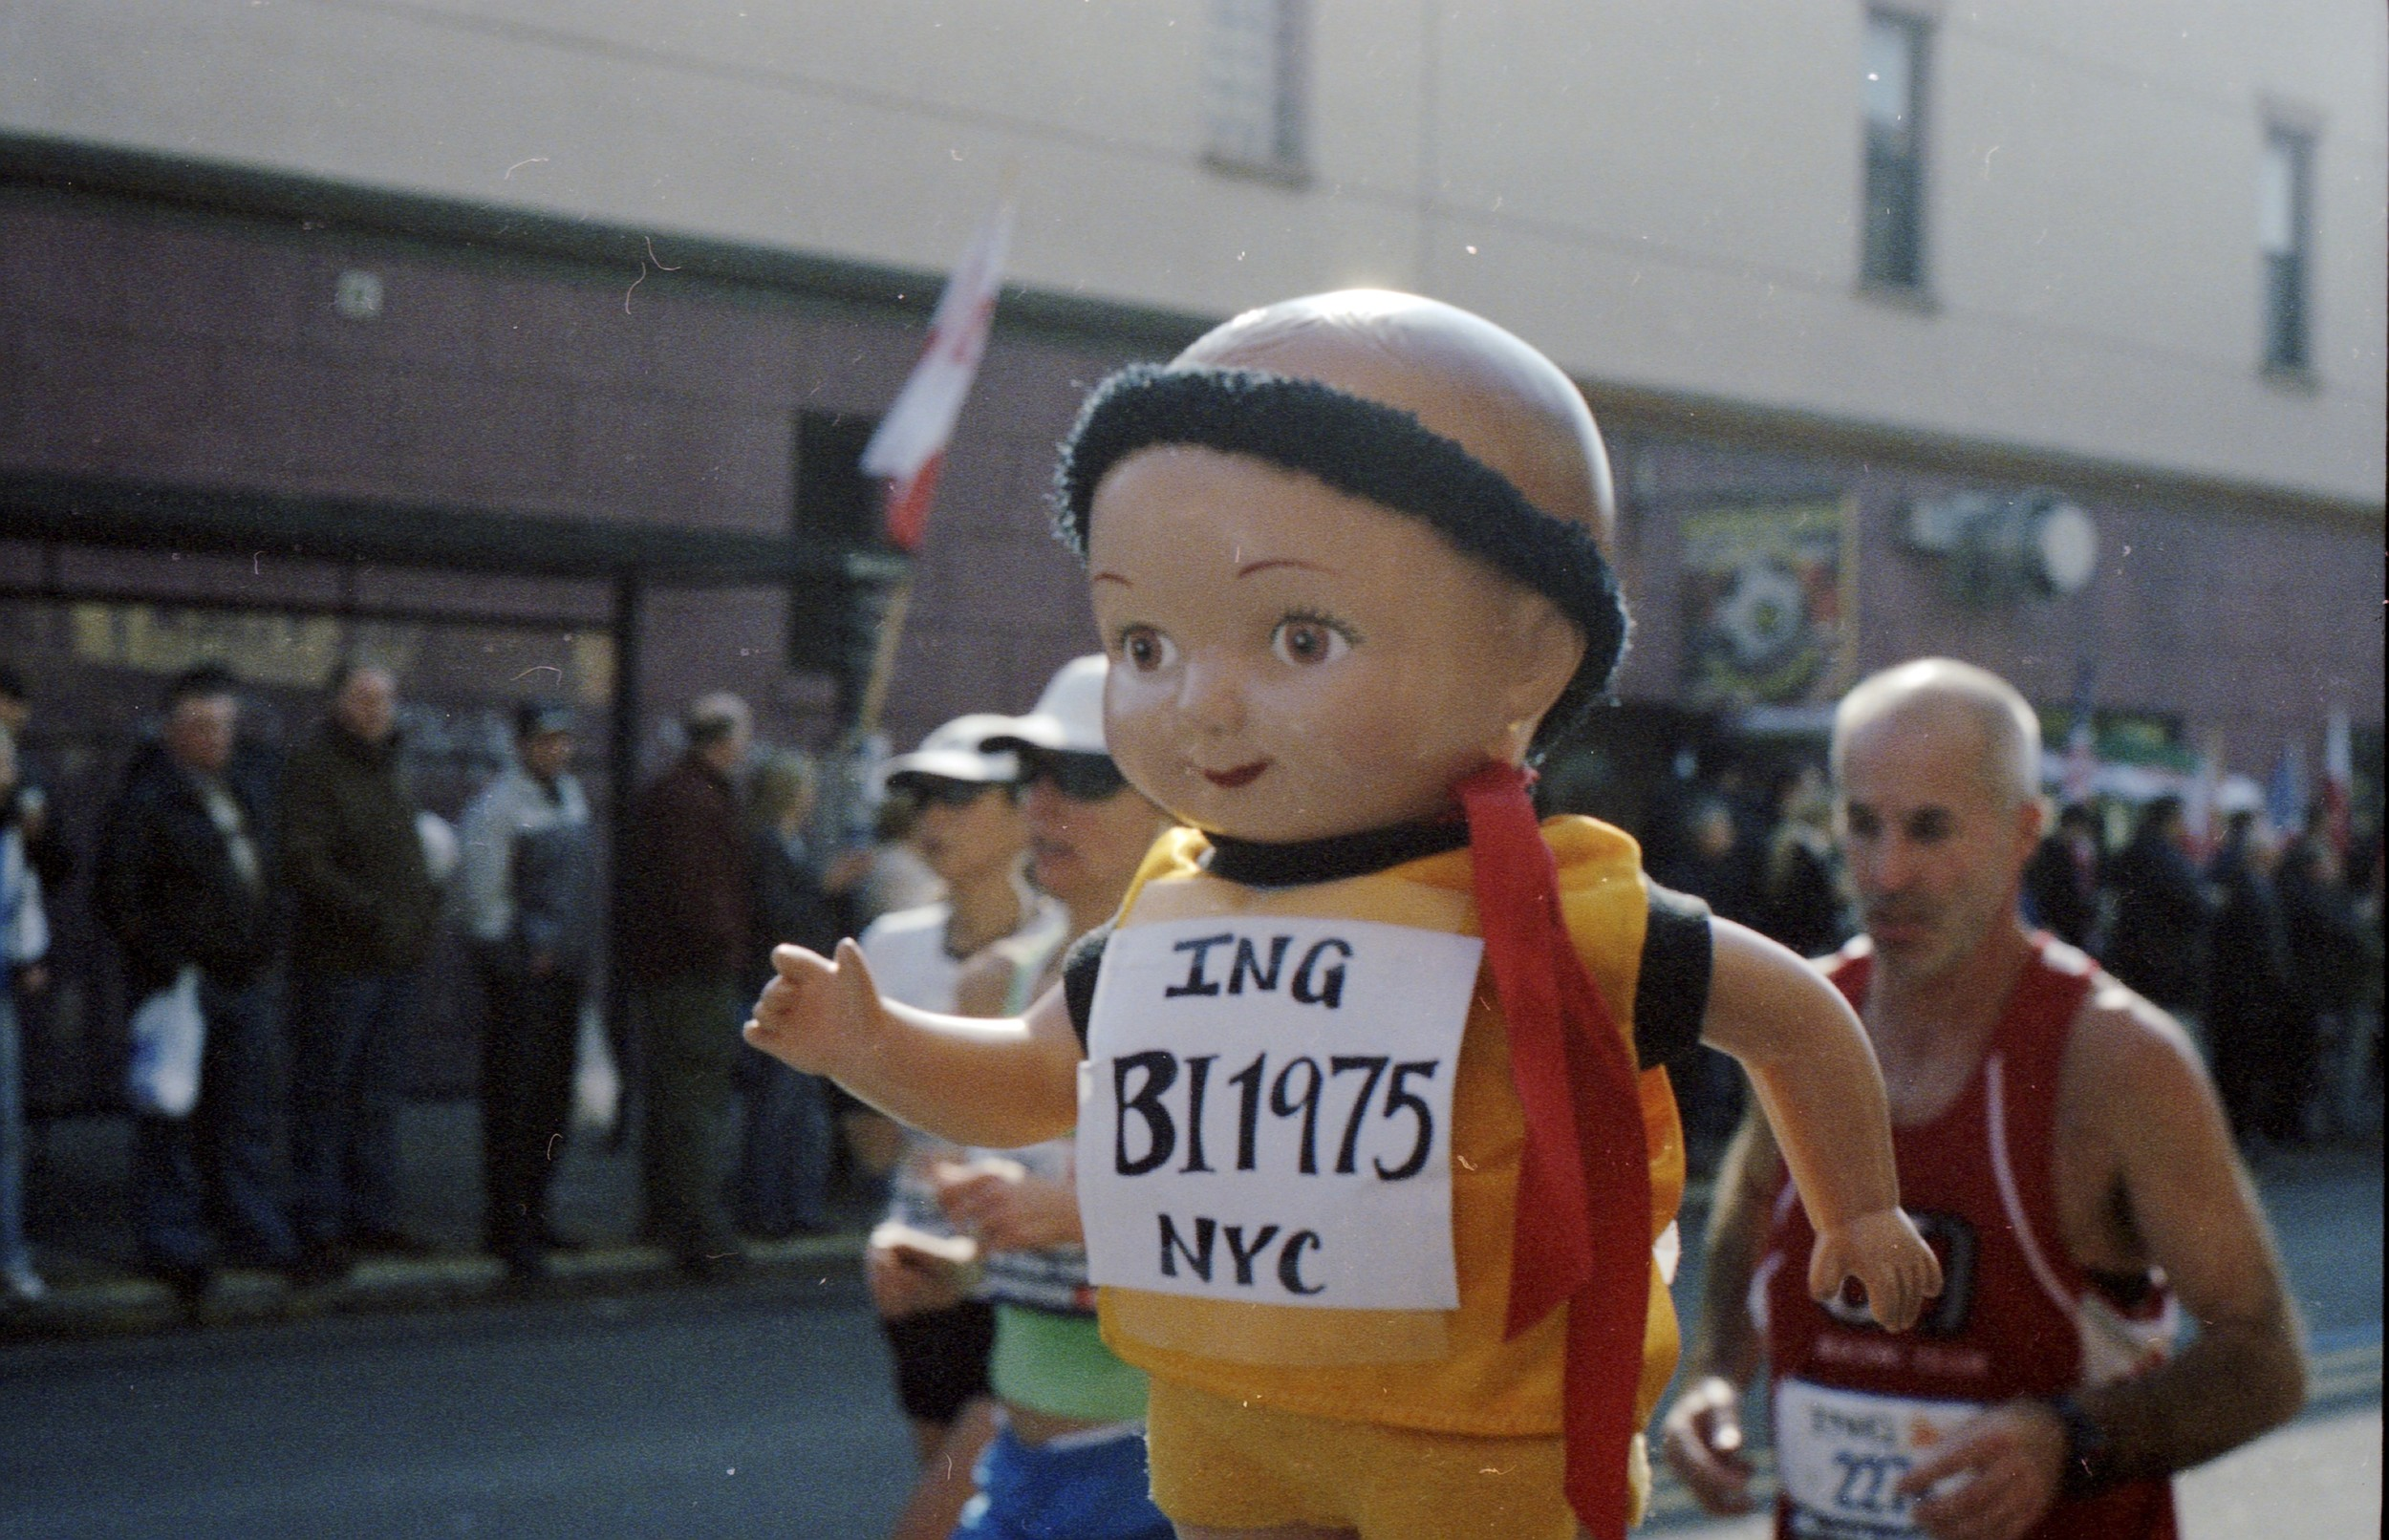 Buddy Ian out front at the NYC Marathon